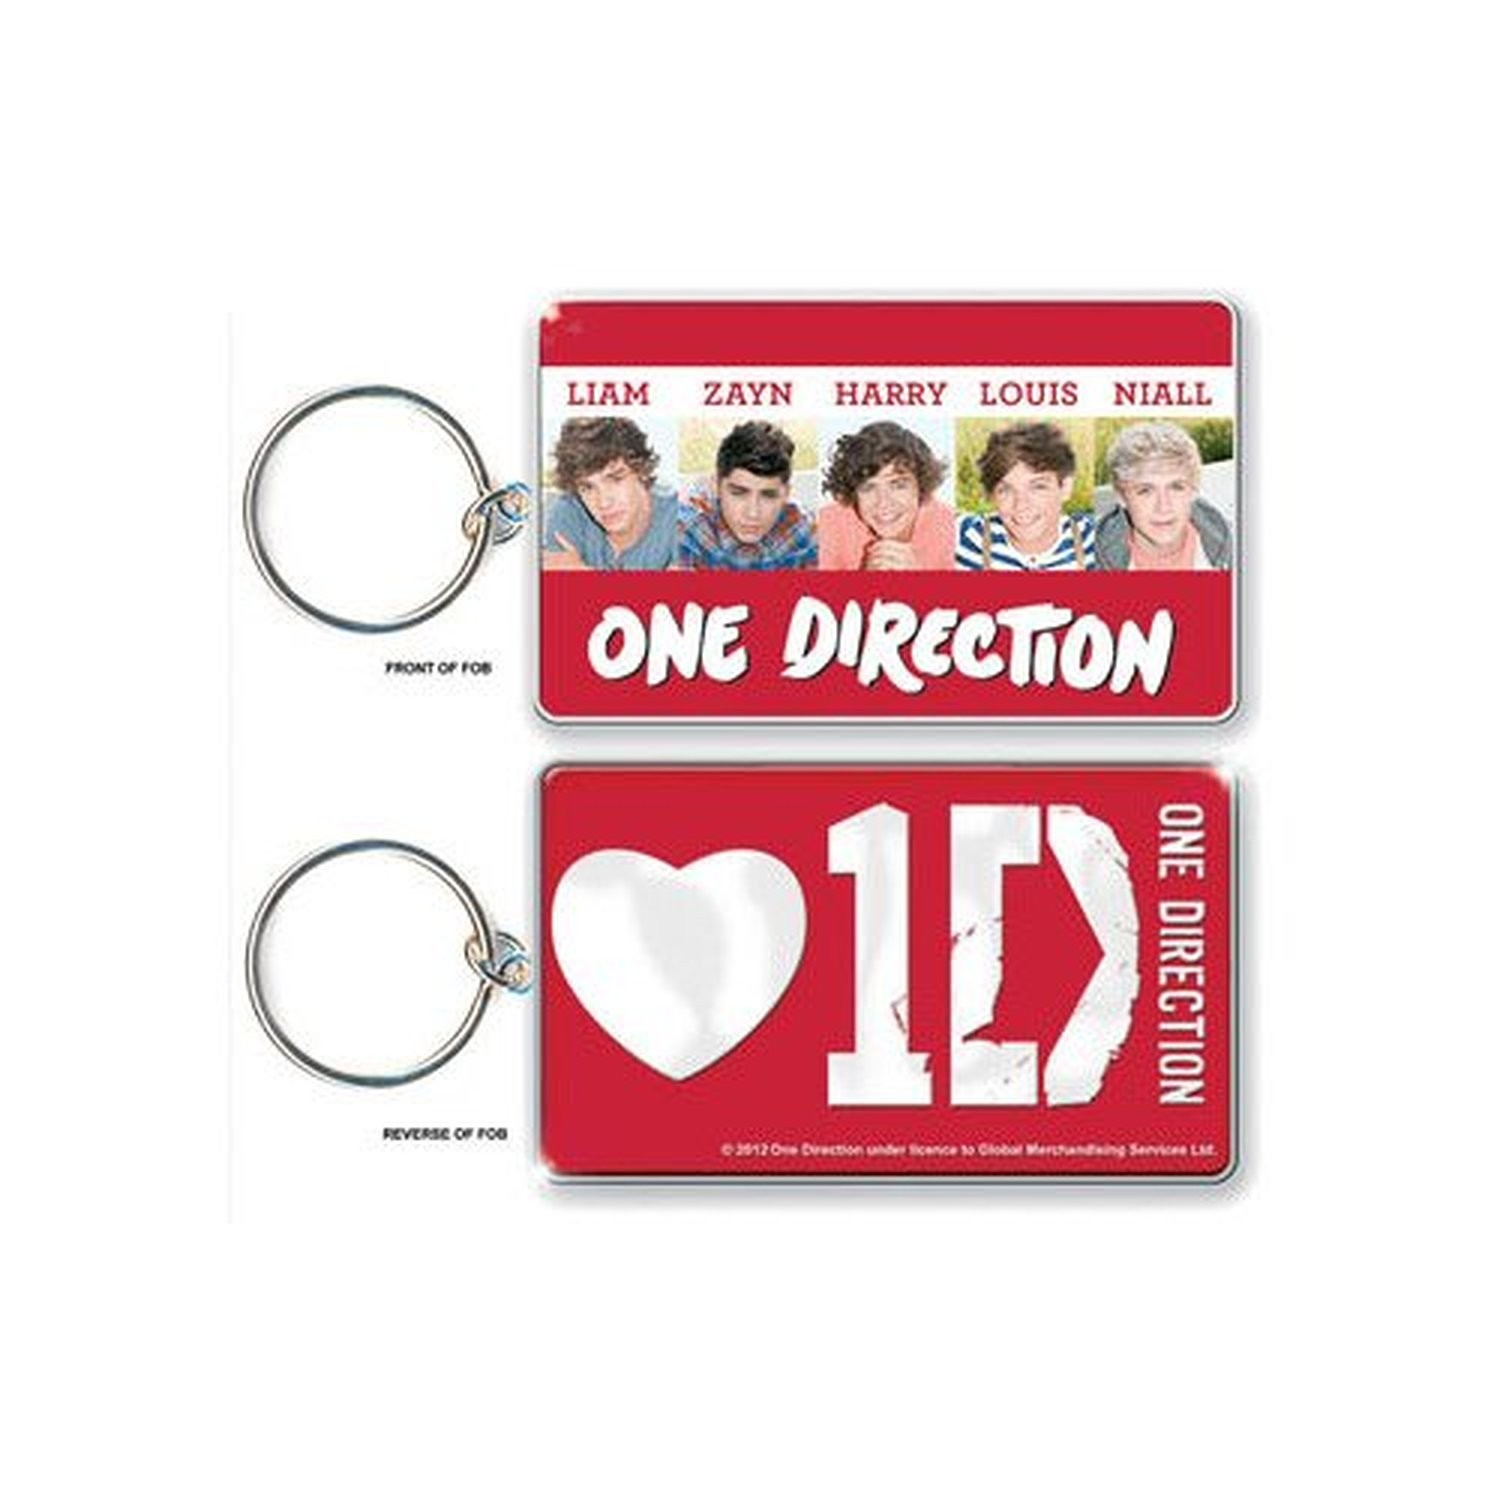 1D One Direction Early Days Red White Keyring Keychain Retro Official Fan Gift